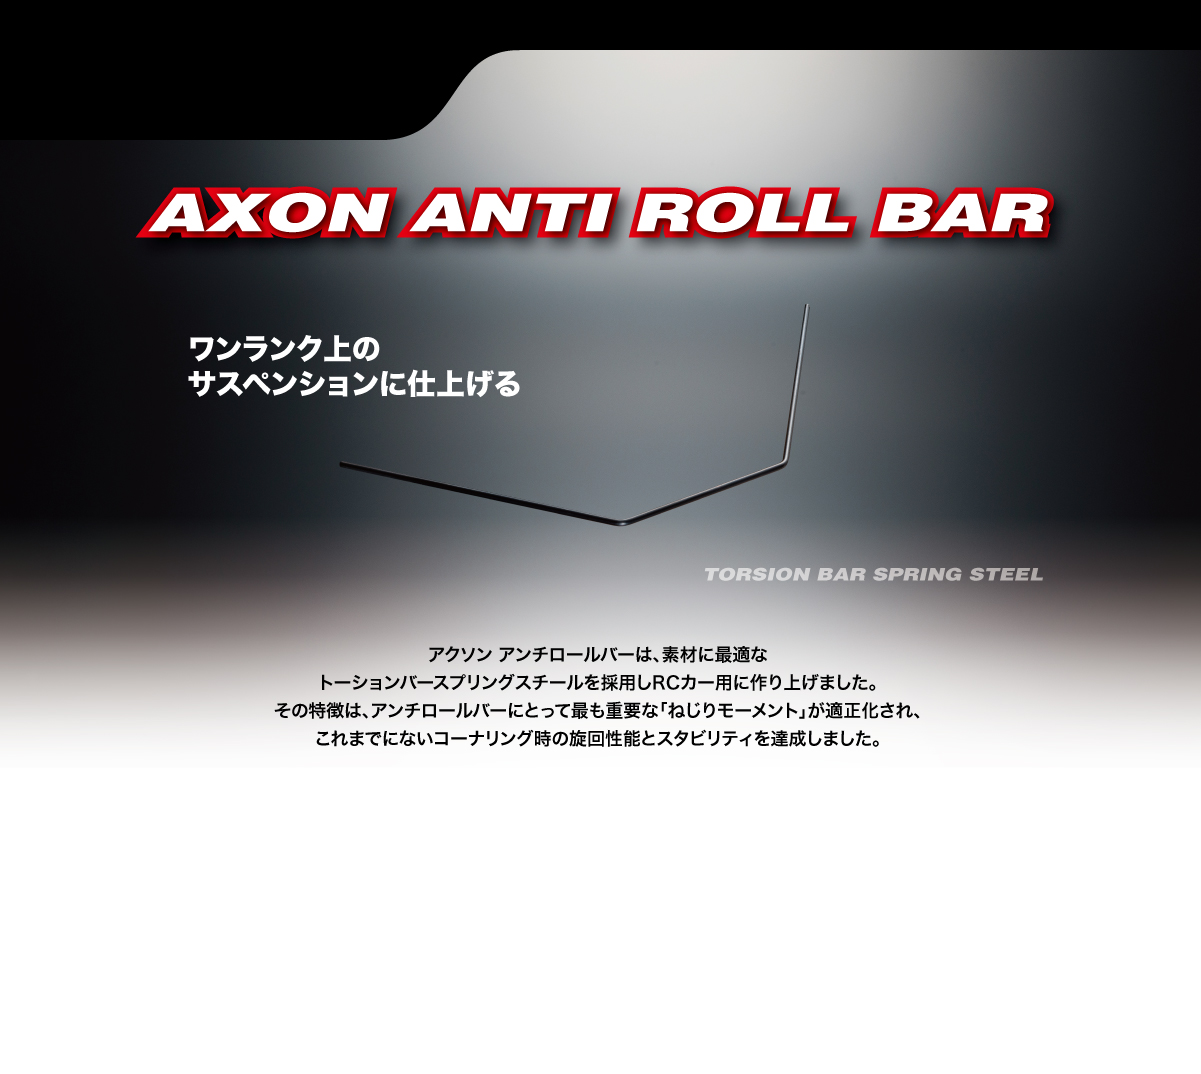 AXON AT-YF-113 AXON ANTI ROLL BAR BD9 FRONT 1.3mm